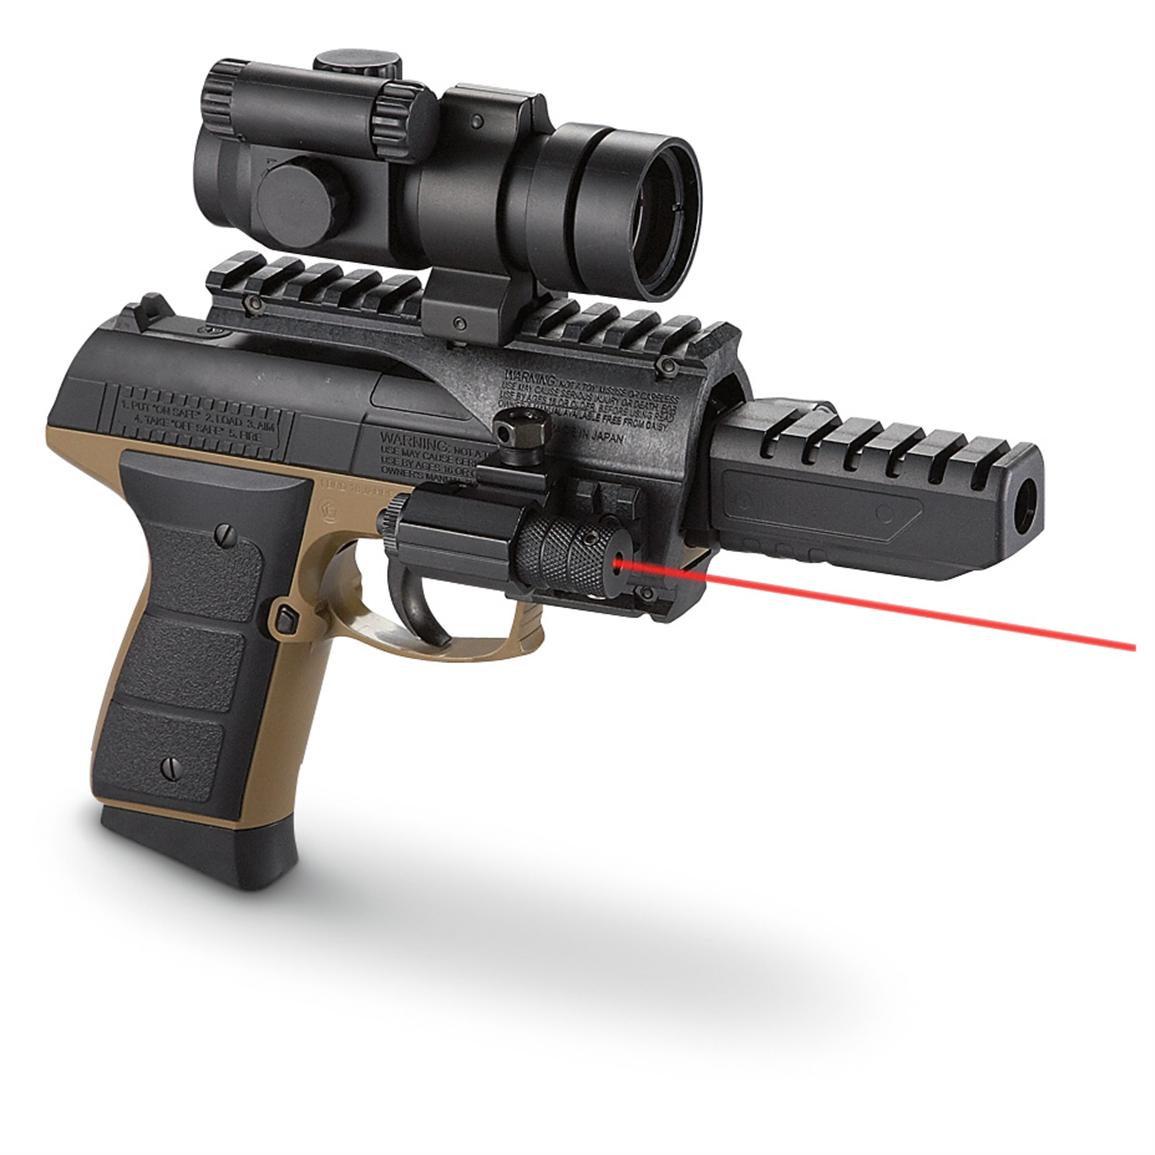 Daisy® Powerline 5503 Blowback Air Pistol